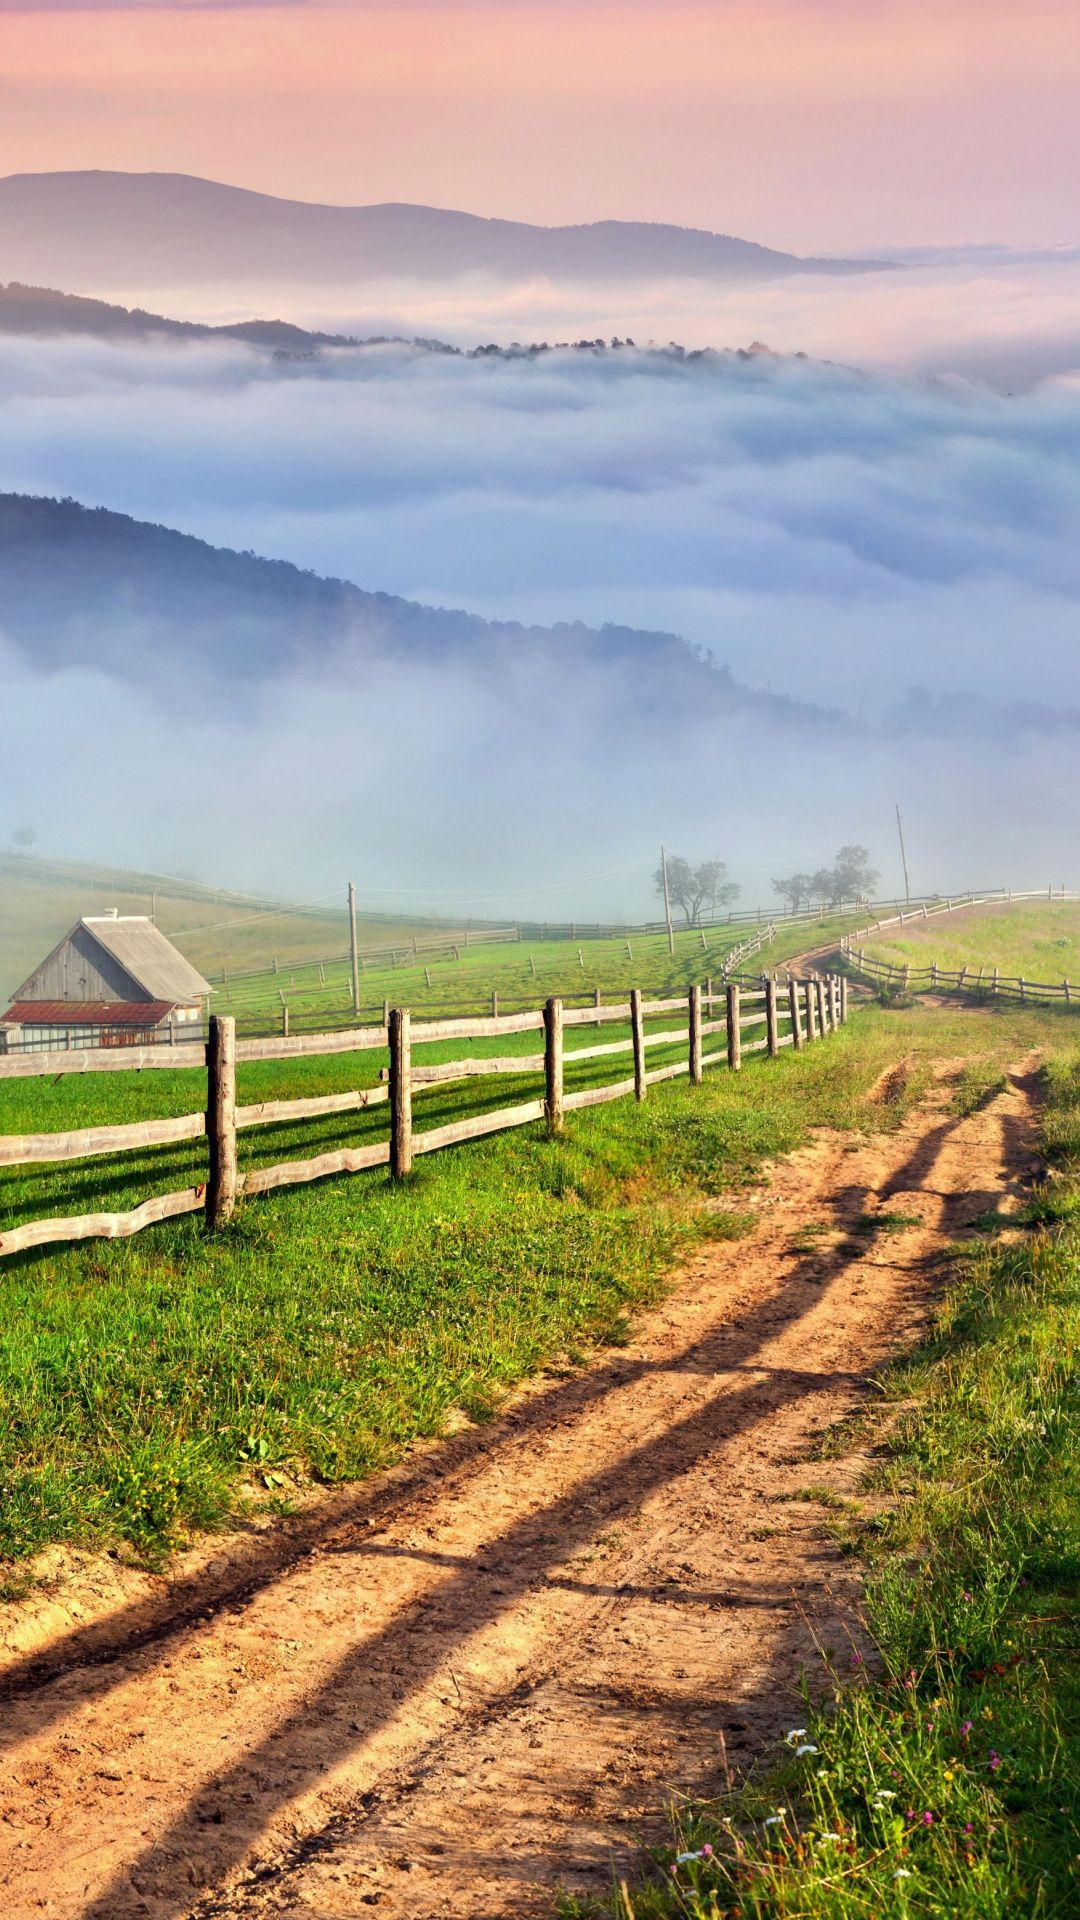 Fog, mist, dirt, road, pathway, fence, landscape, nature